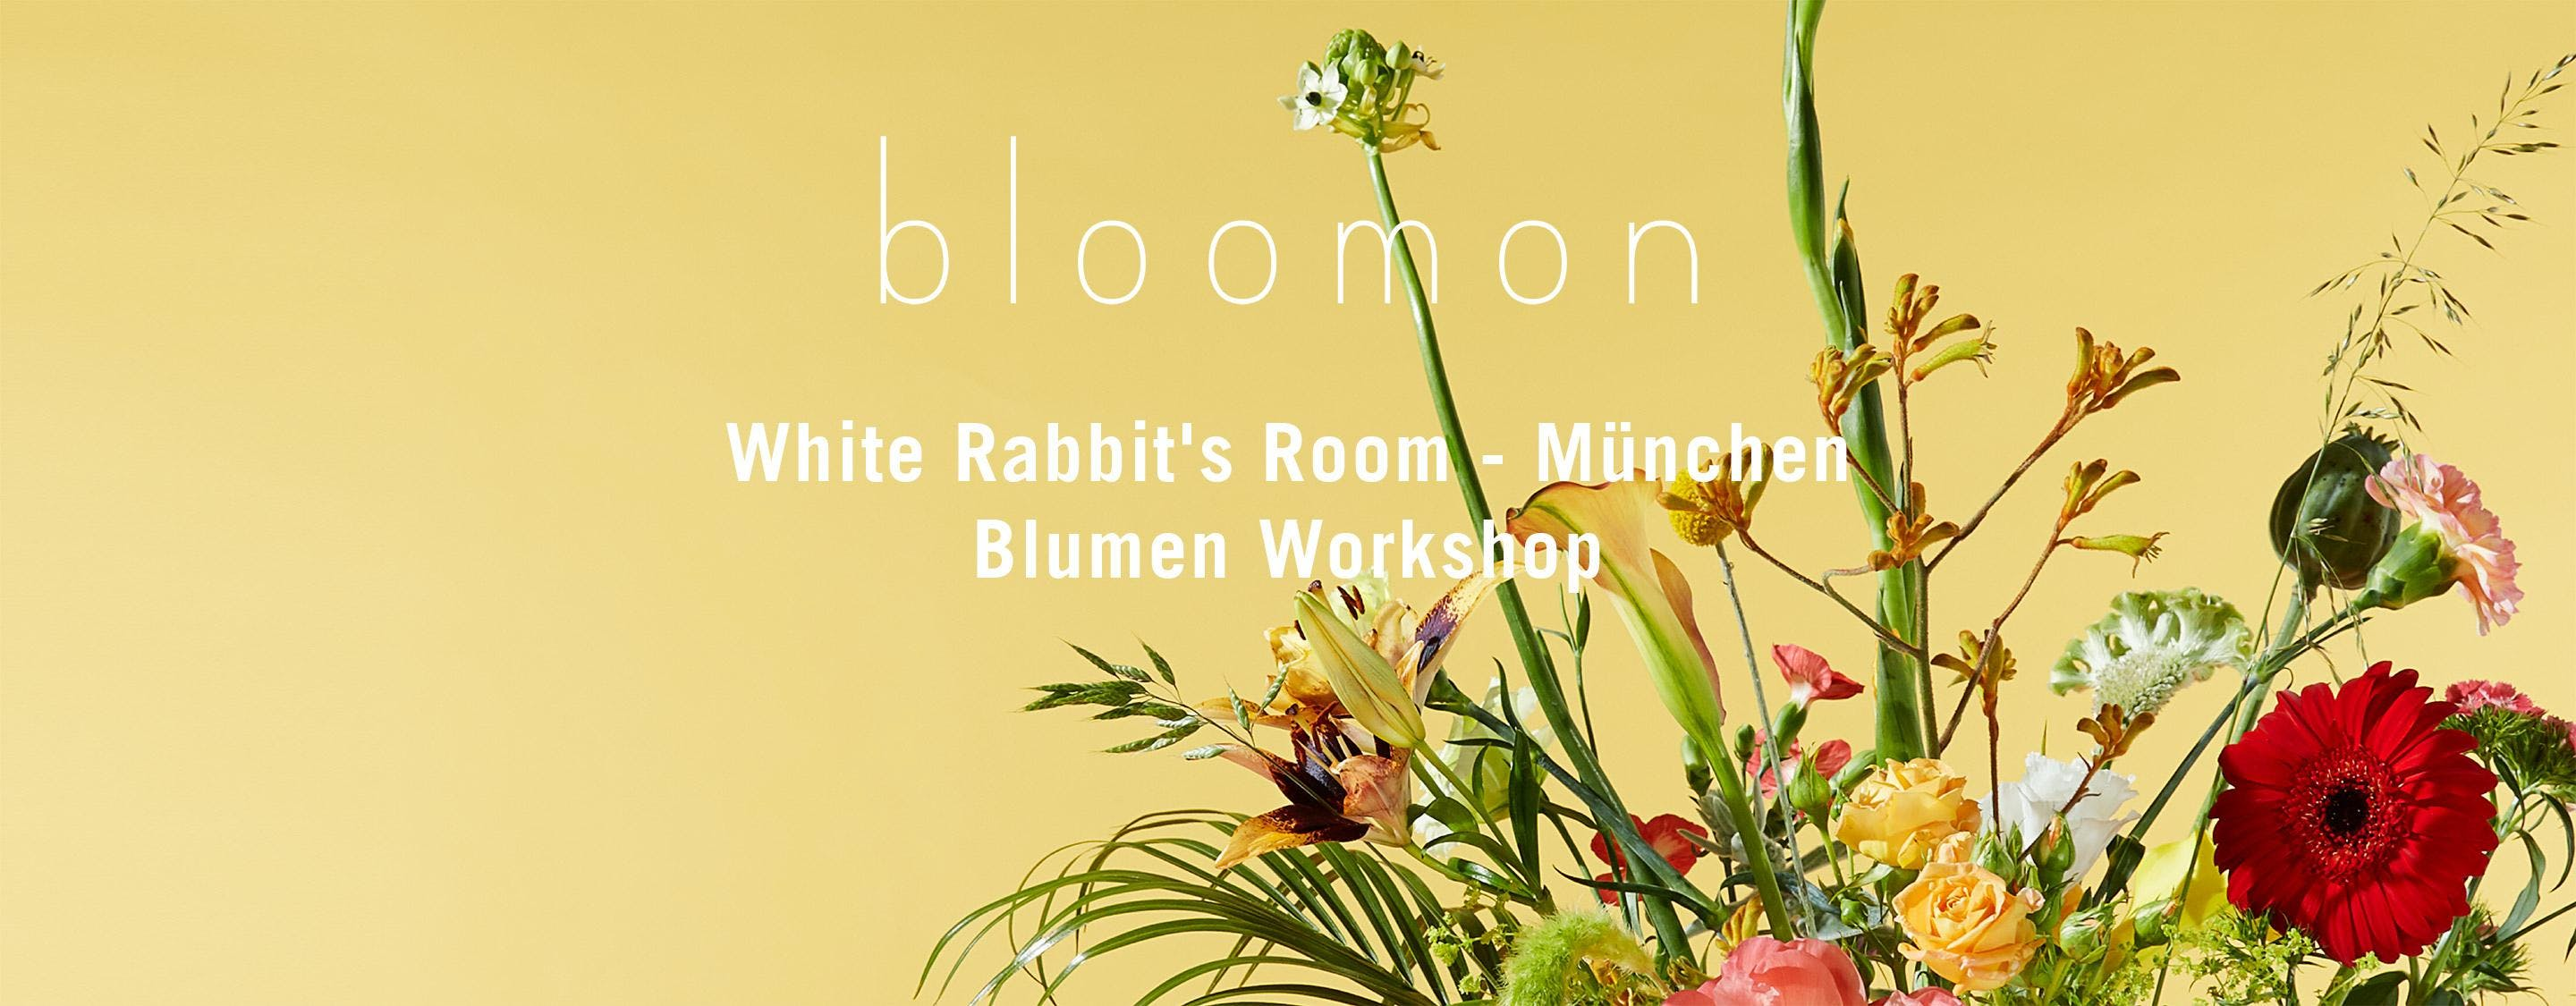 bloomon Workshop 14. Juni | München, White Rabbit's Room